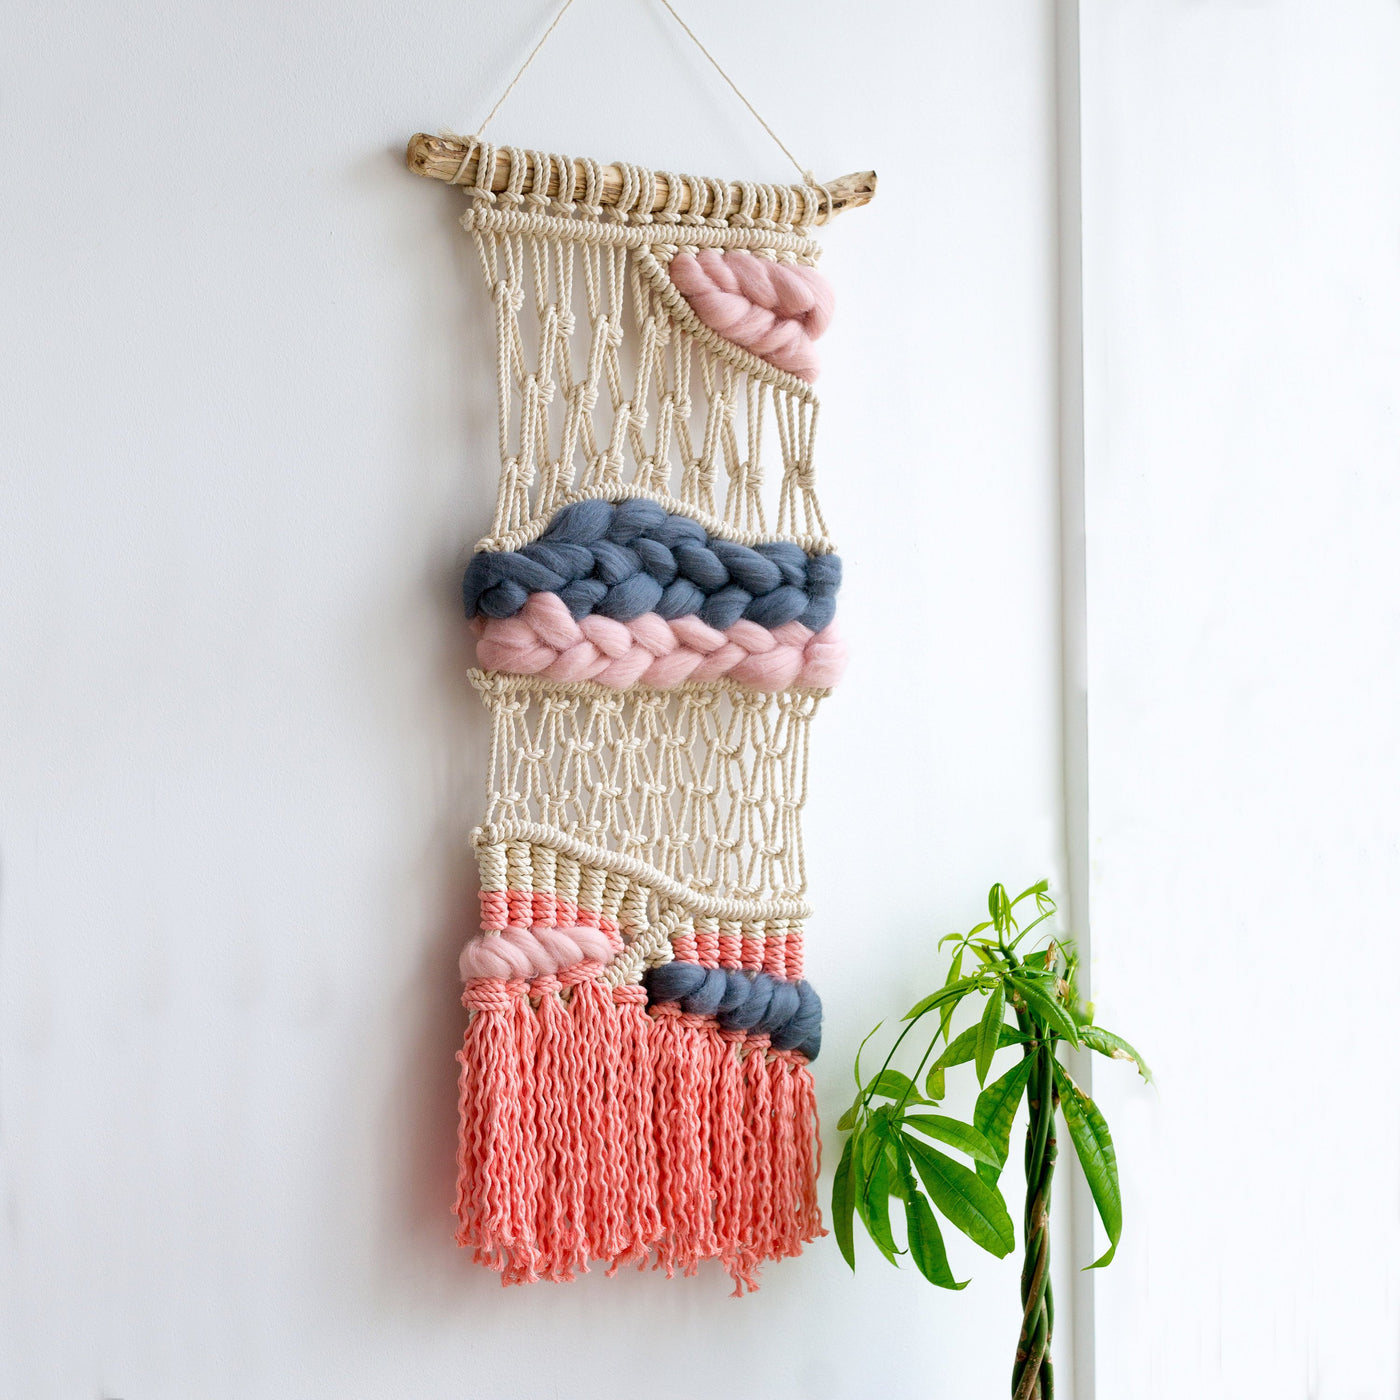 Macrame wall hanging / nursery decor / One of a kind